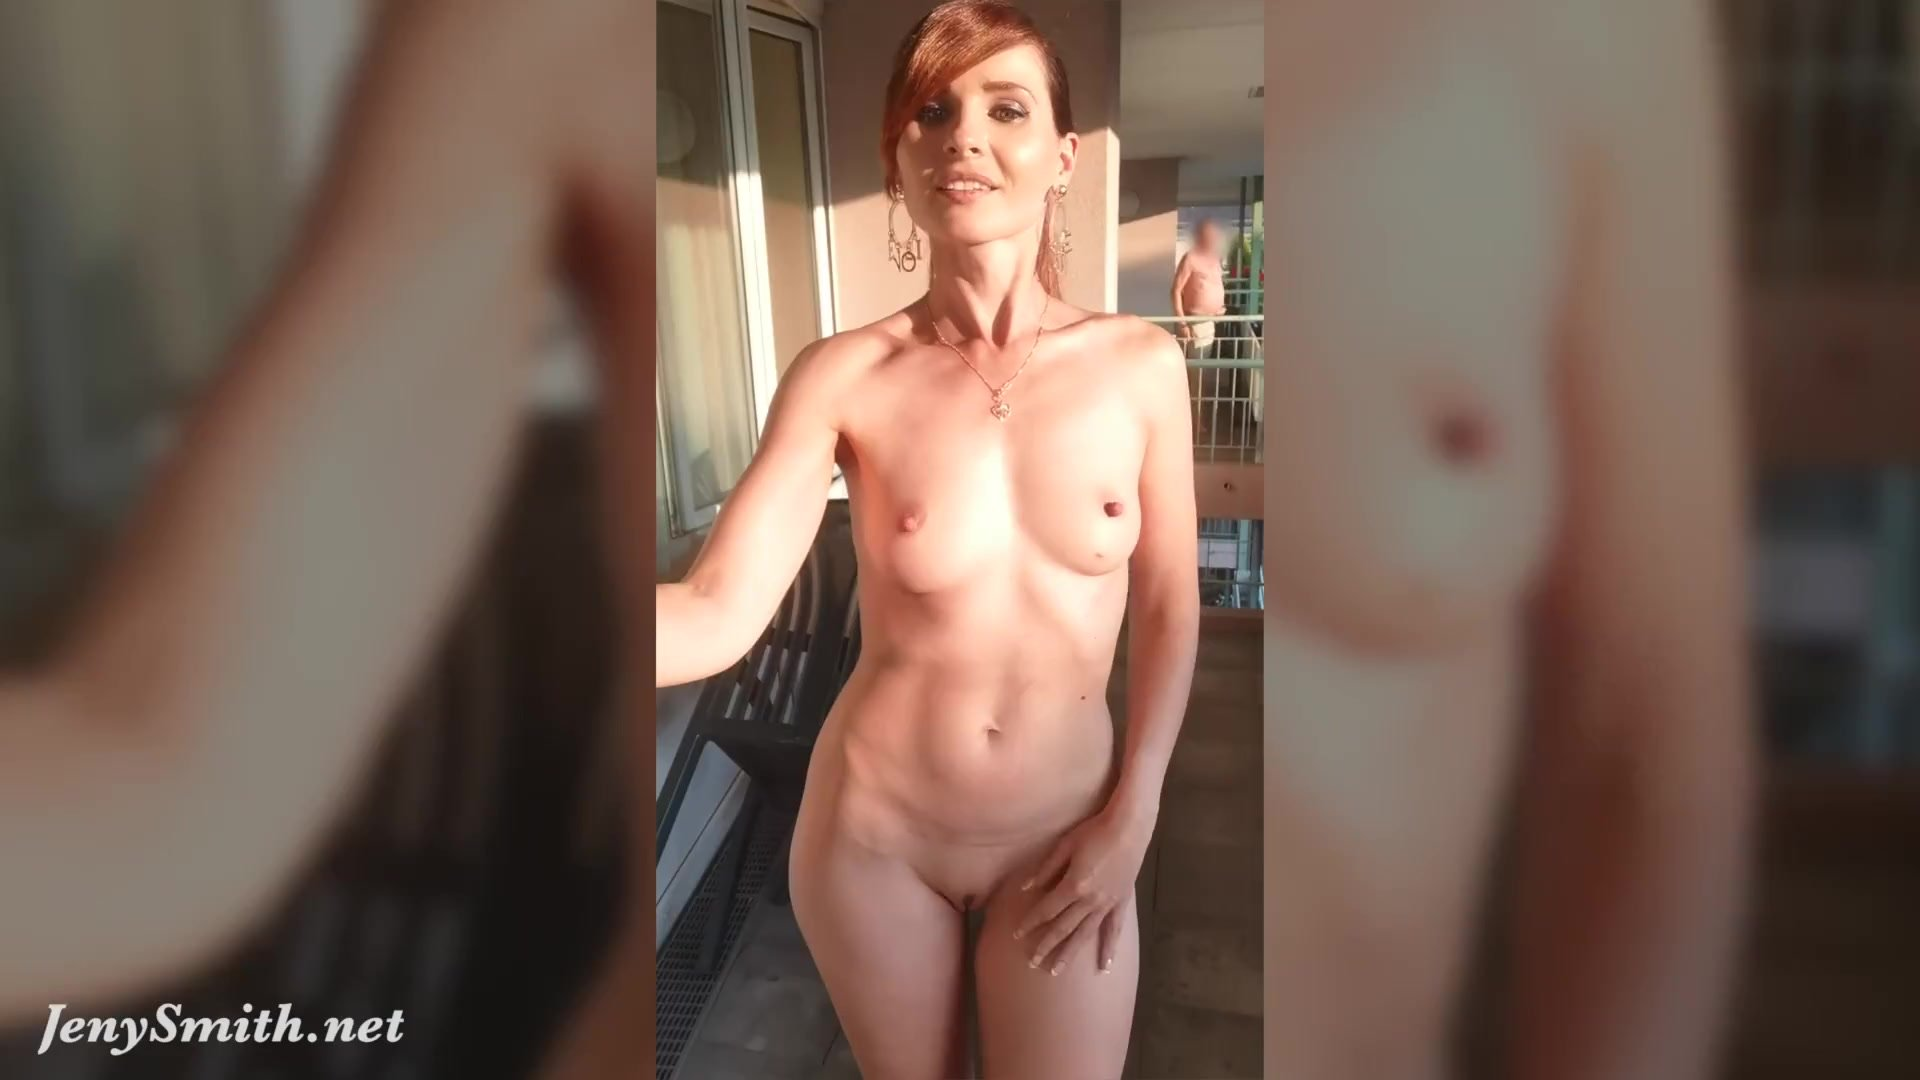 Jeny Smith compilation. Naked in public with flashing and body art scenes